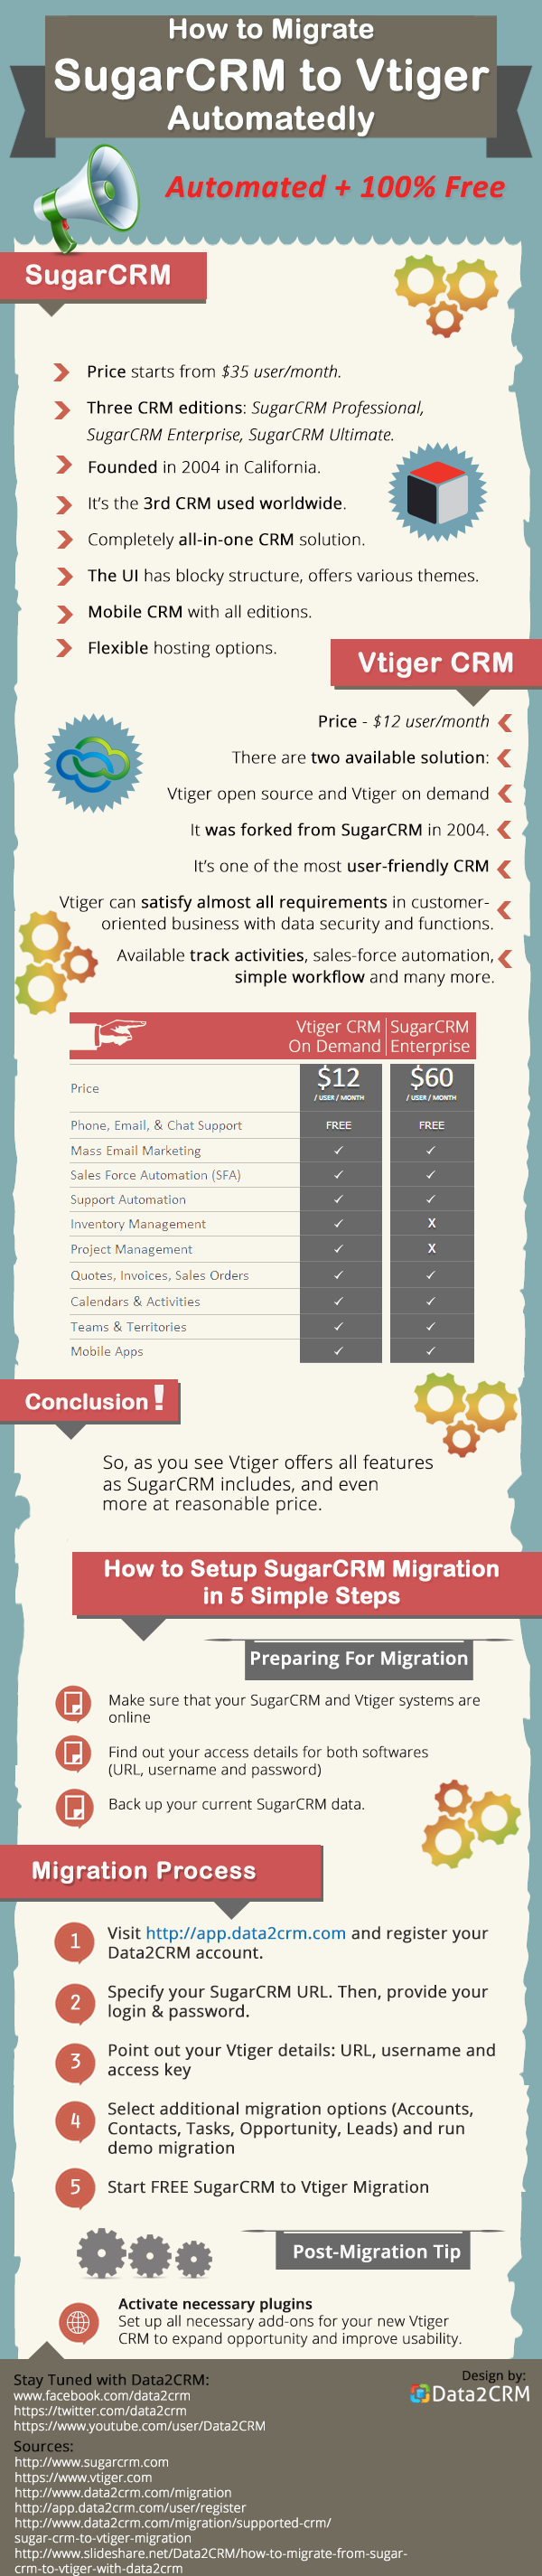 SugarCRM_to_Vtiger_infographic-pros-and-cons